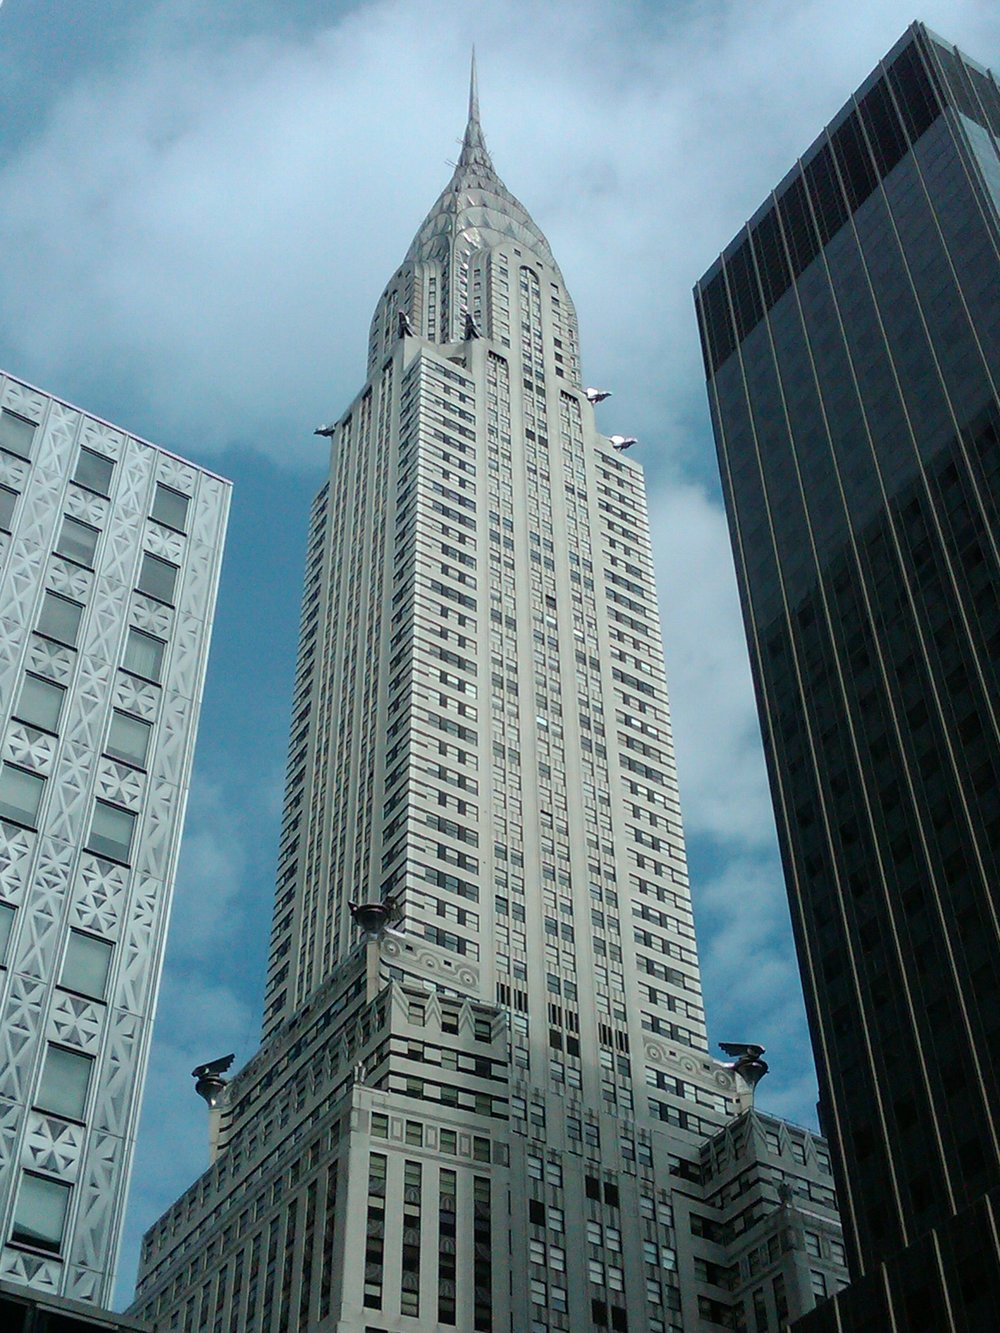 The Chrysler Building as seen from the street. As the building gets taller it has to set itself further back from the street creating the iconic stepped form.